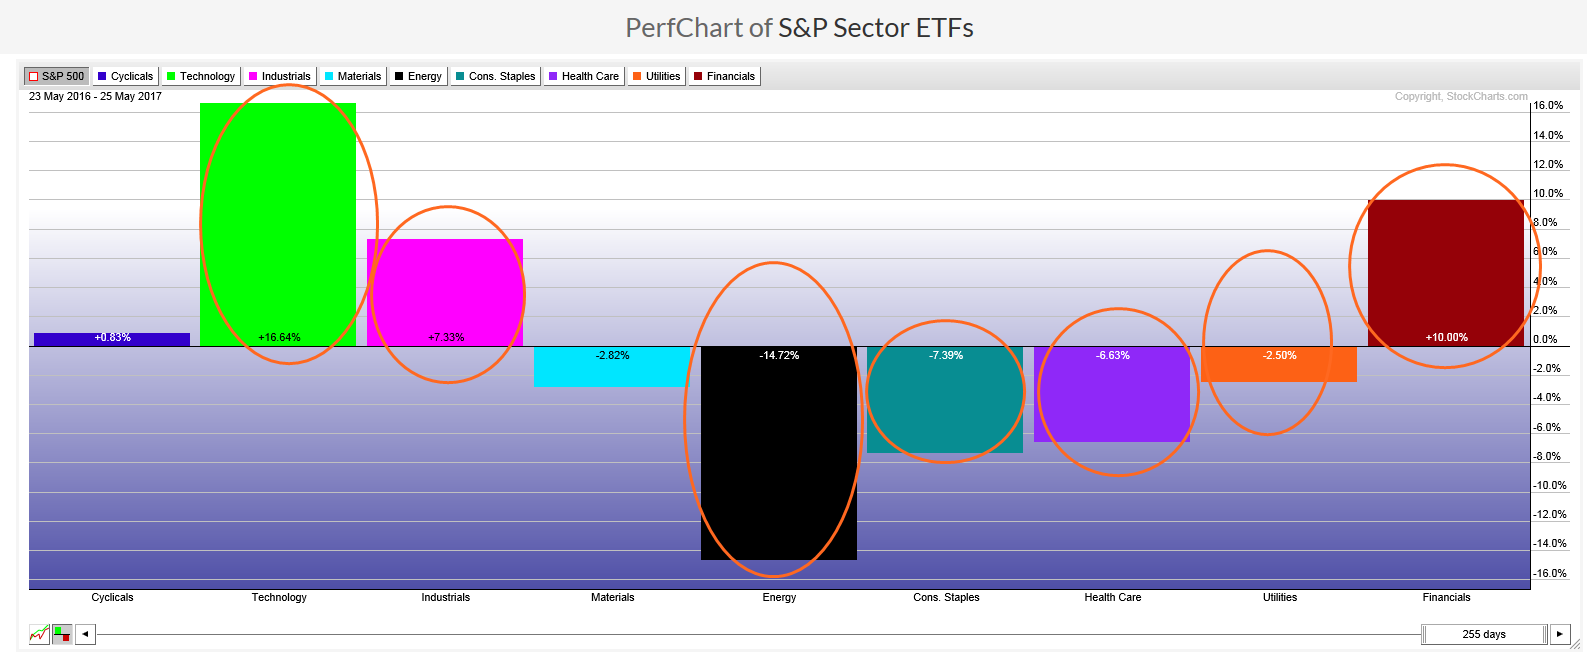 Sector Rotation: Performance chart of S&P Sector ETFs from May 2016 to May 2017